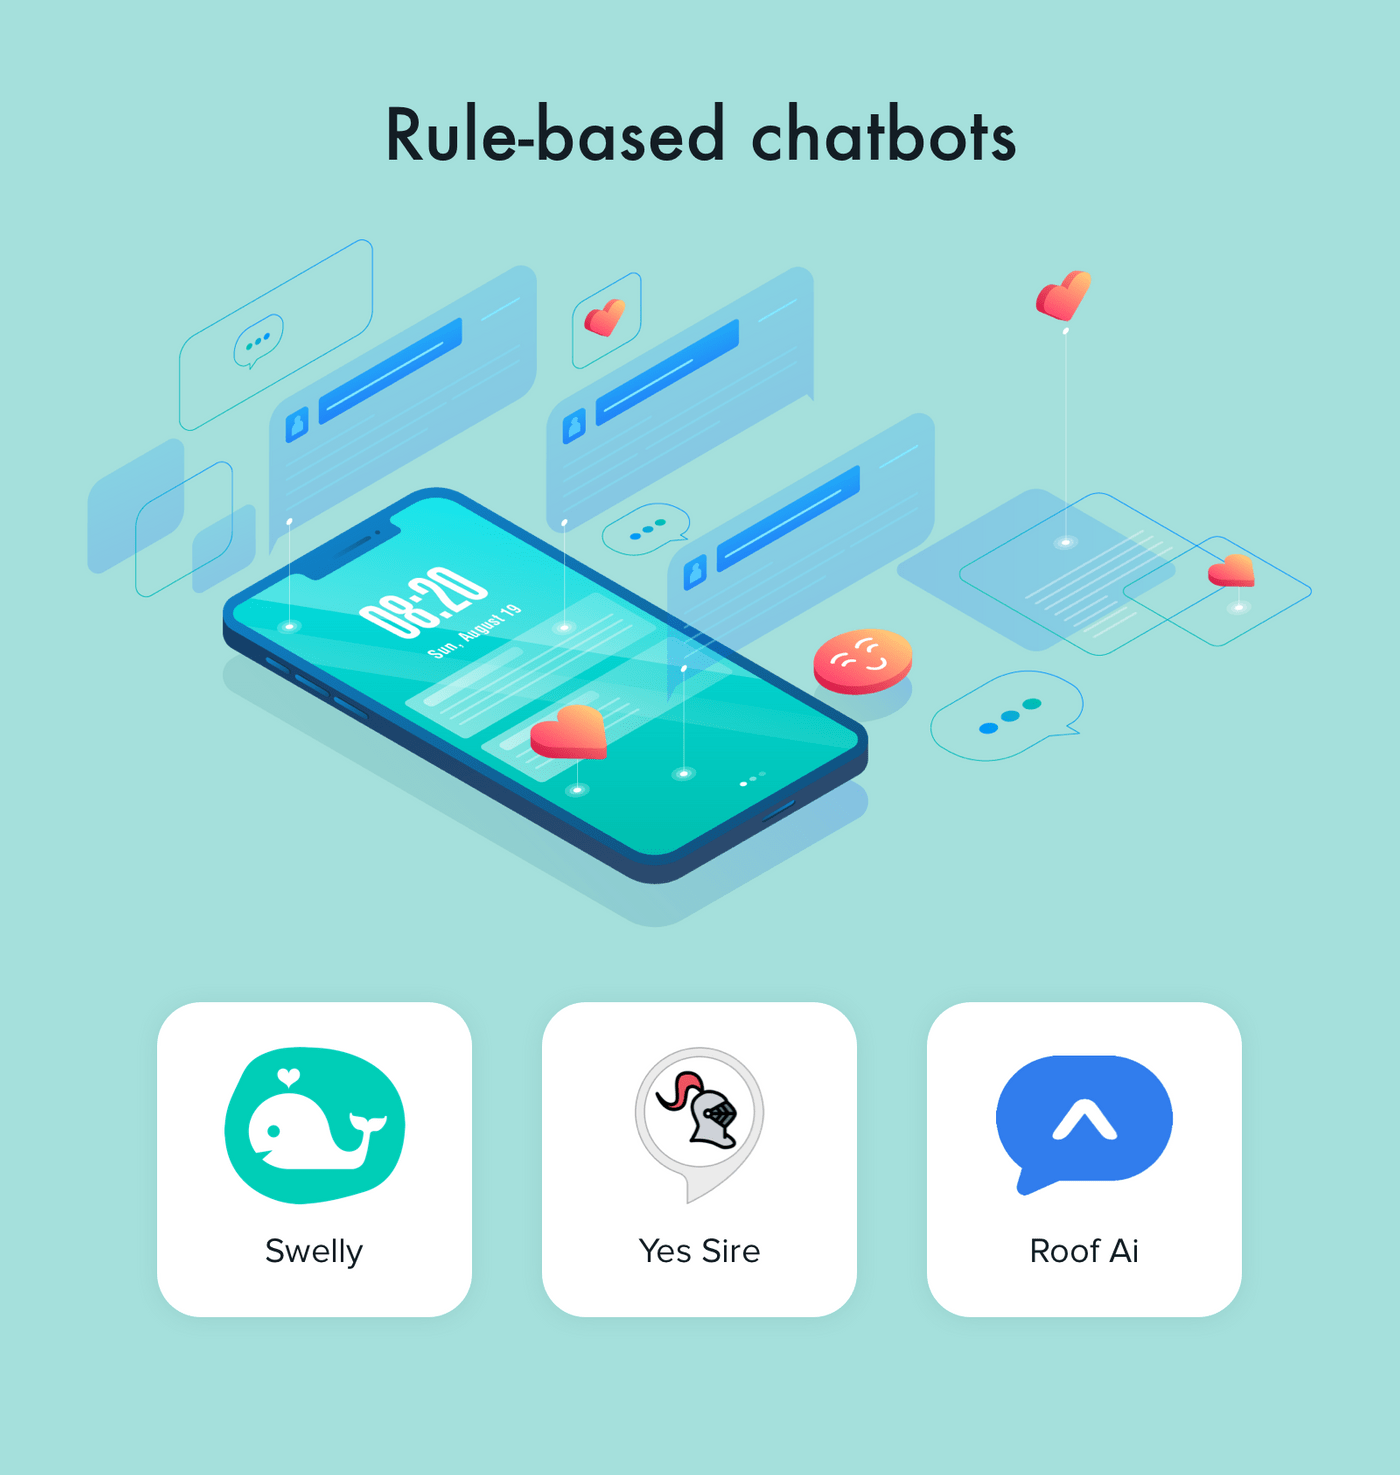 Rule-based chatbots